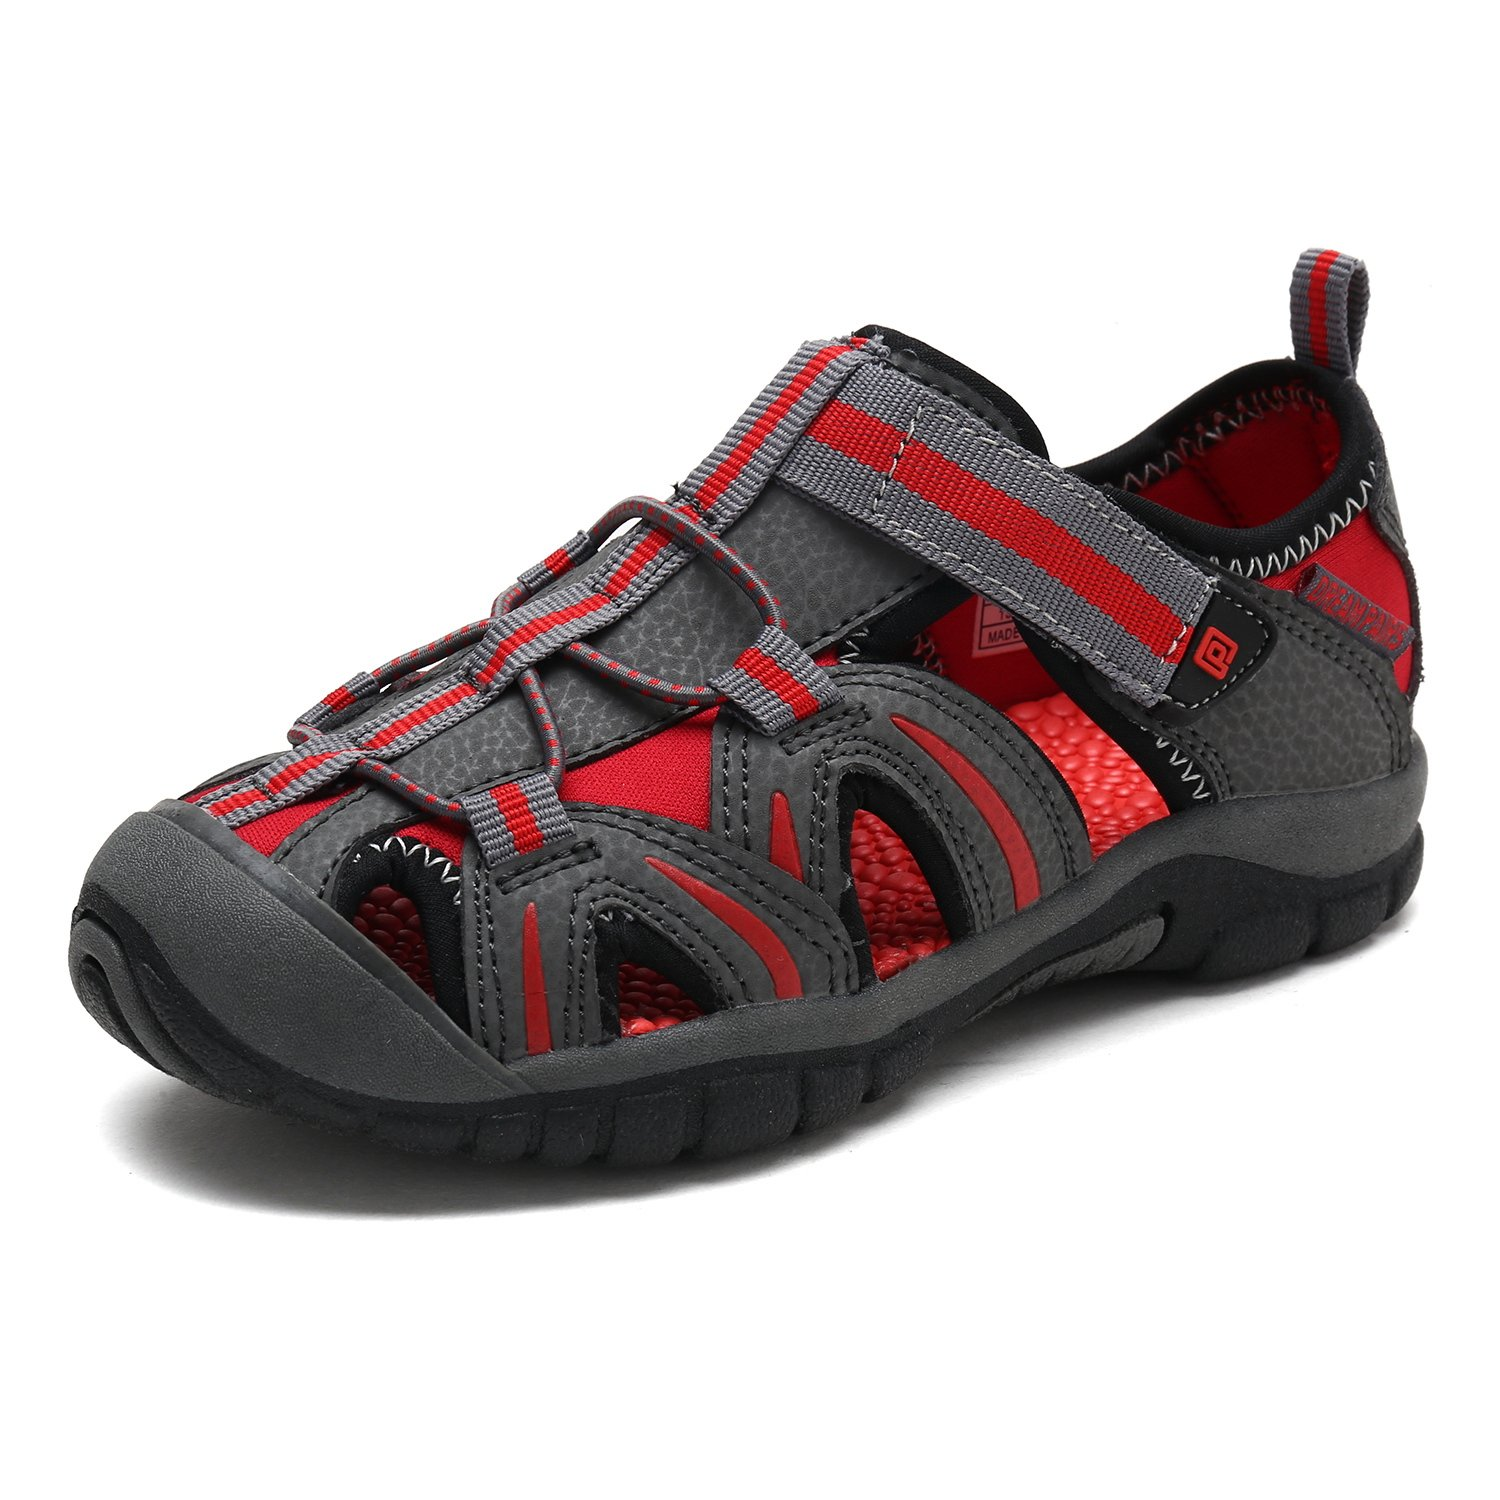 DREAM PAIRS Toddler 171112-K Grey RED Outdoor Summer Sandals Size 9 M US Toddler